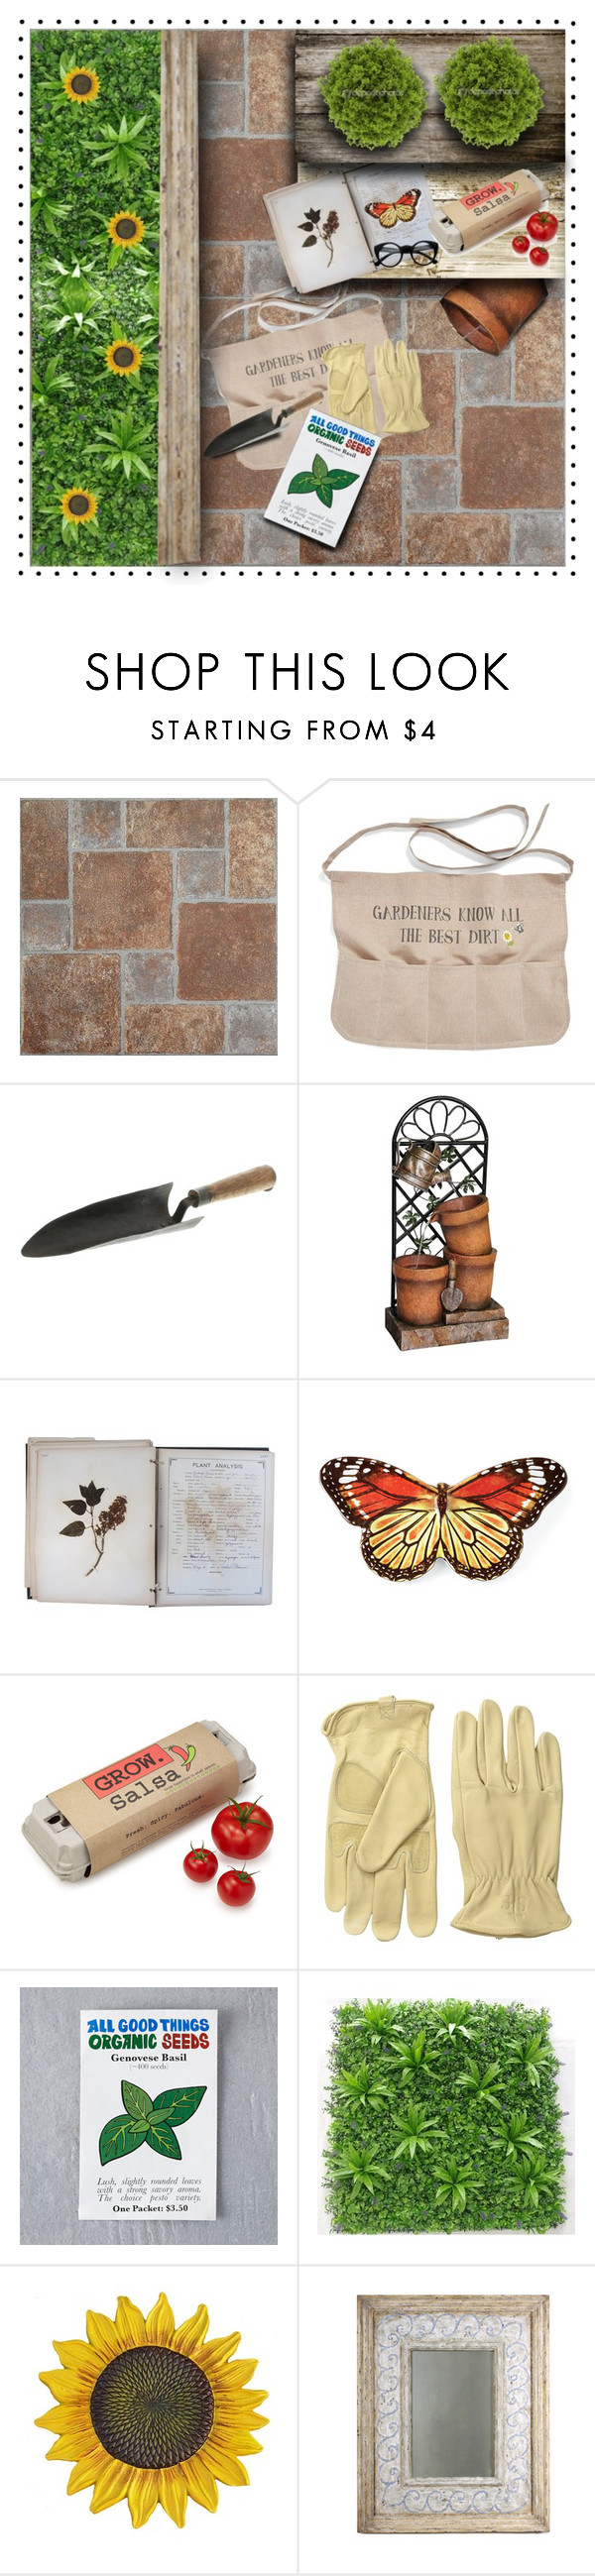 """Nature never goes out of style♡♡"" by preciouspearll ❤ liked on Polyvore featuring interior, interiors, interior design, home, home decor, interior decorating, Nexus, Levtex, Dot & Bo and Universal Lighting and Decor"